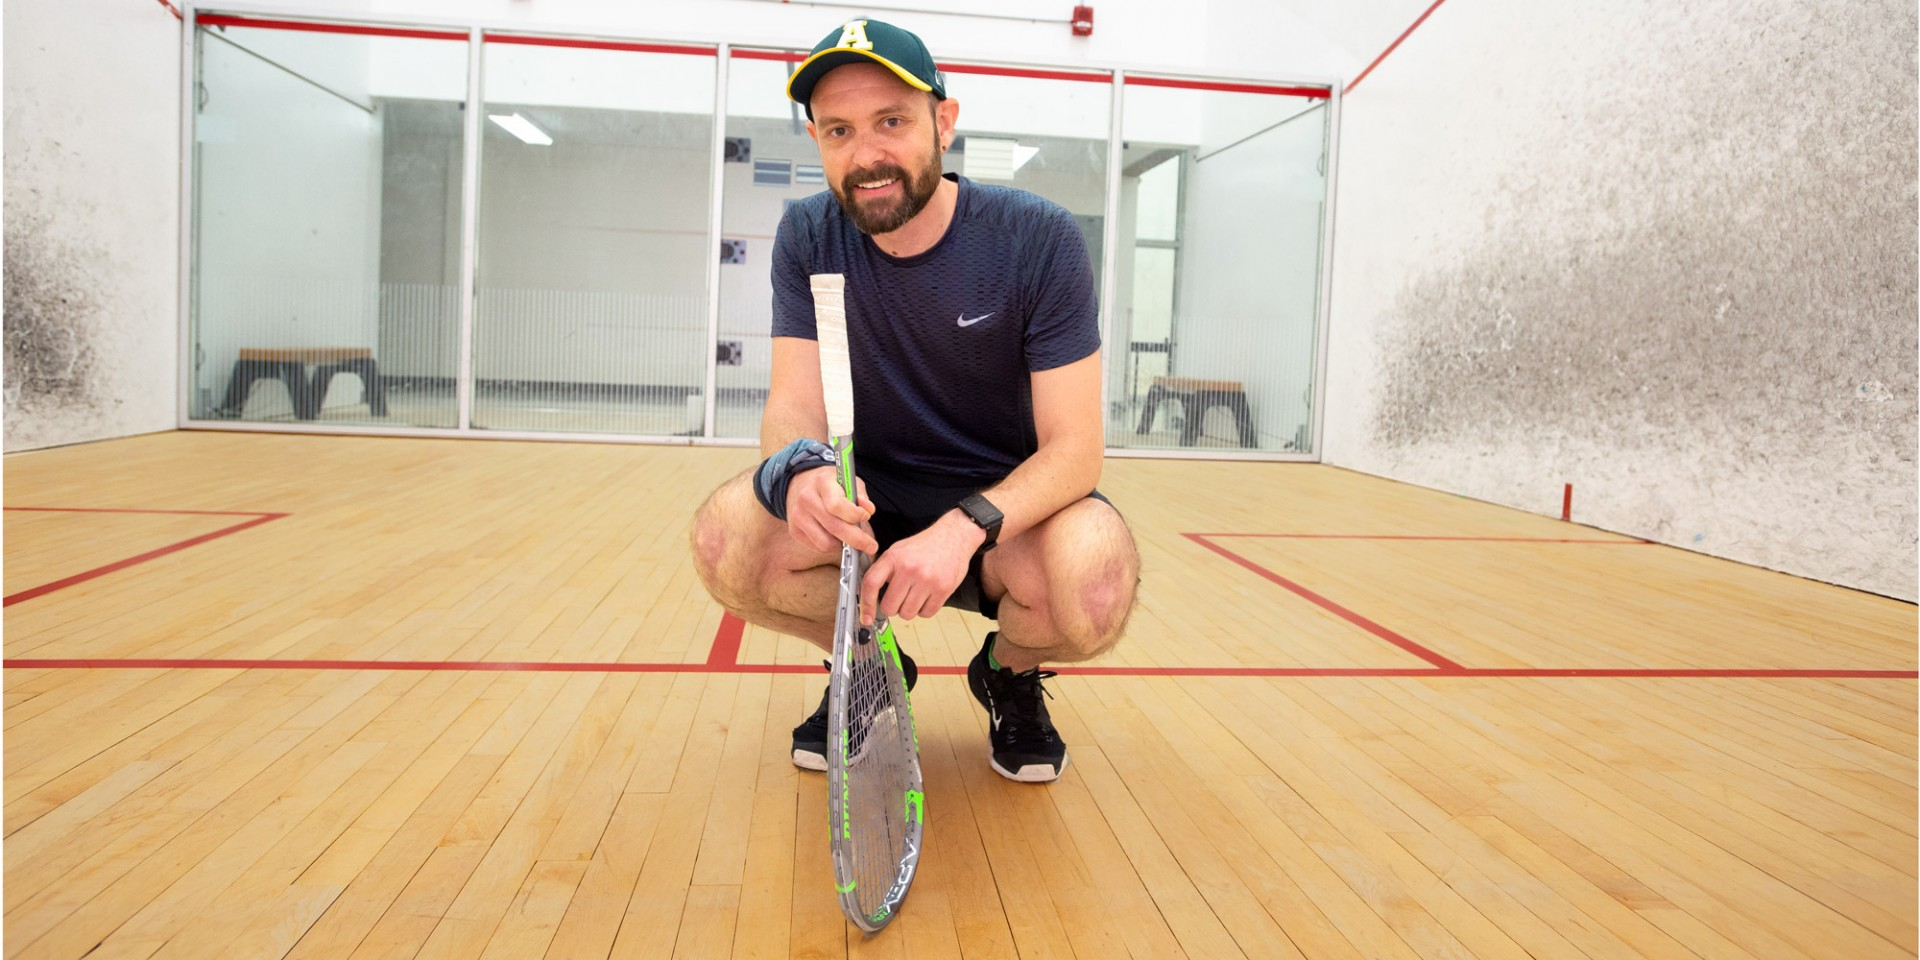 Vaughn Marillier stays active with weekly squash matches at the U of A's PAW Centre. The kinesiology graduate discovered his passion for fitness and nutrition after coming to Canada from Zimbabwe. (Photo: Richard Siemens)